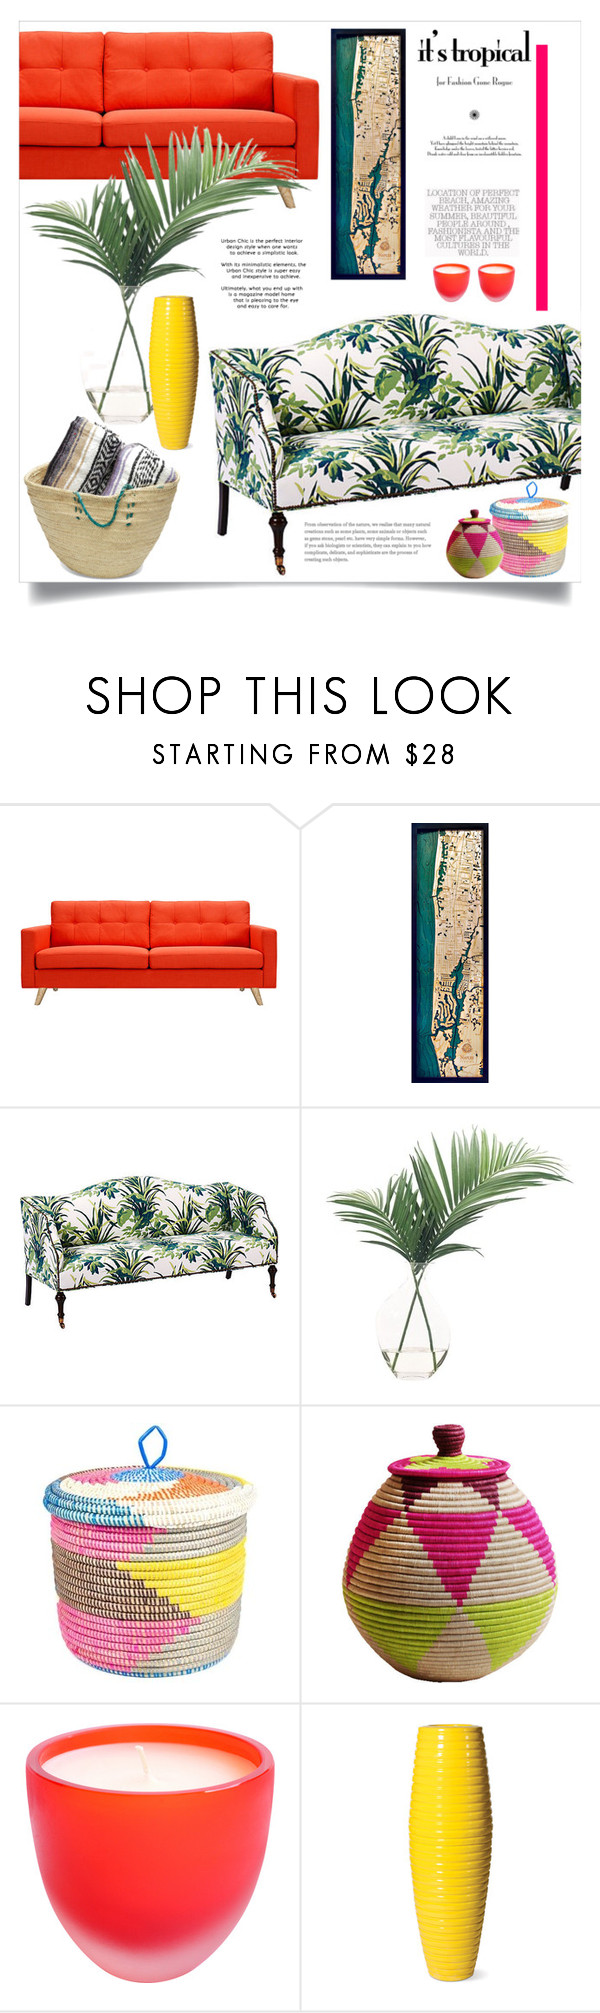 """tropical."" by kelle-elizabeth ❤ liked on Polyvore featuring interior, interiors, interior design, home, home decor, interior decorating, Dot & Bo, Thos. Baker, NDI and Swahili"